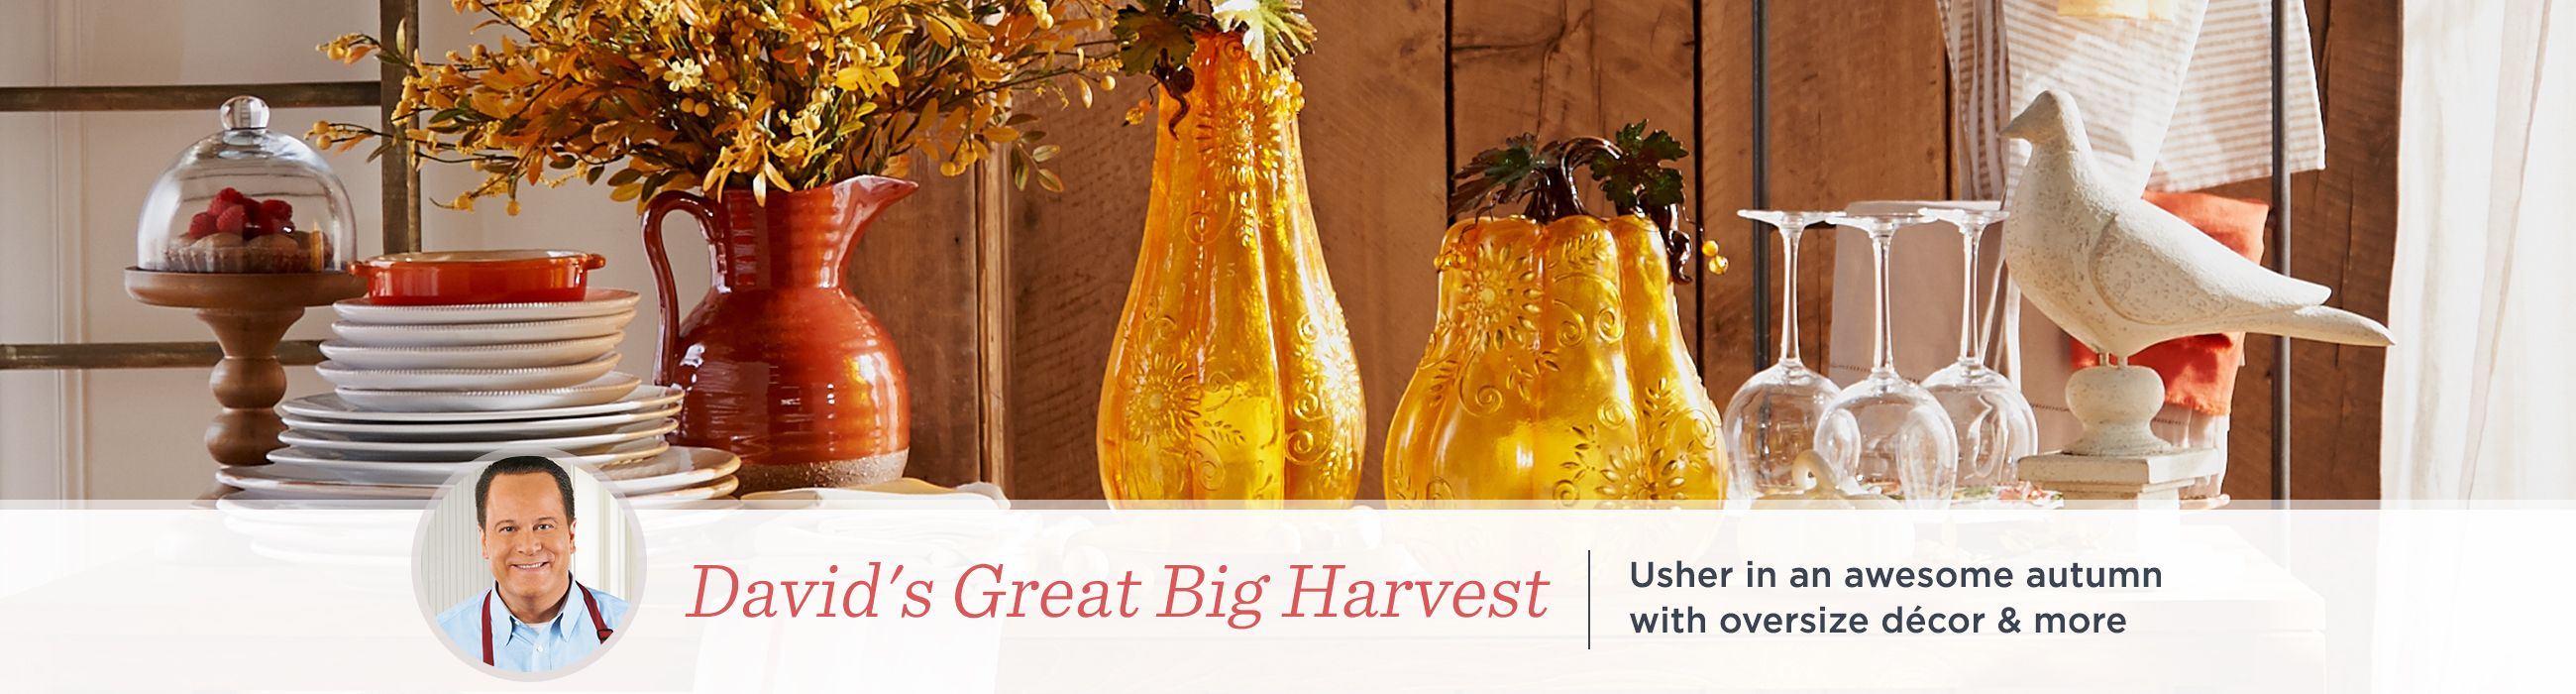 David's Great Big Harvest  Usher in an awesome autumn with oversize décor & more